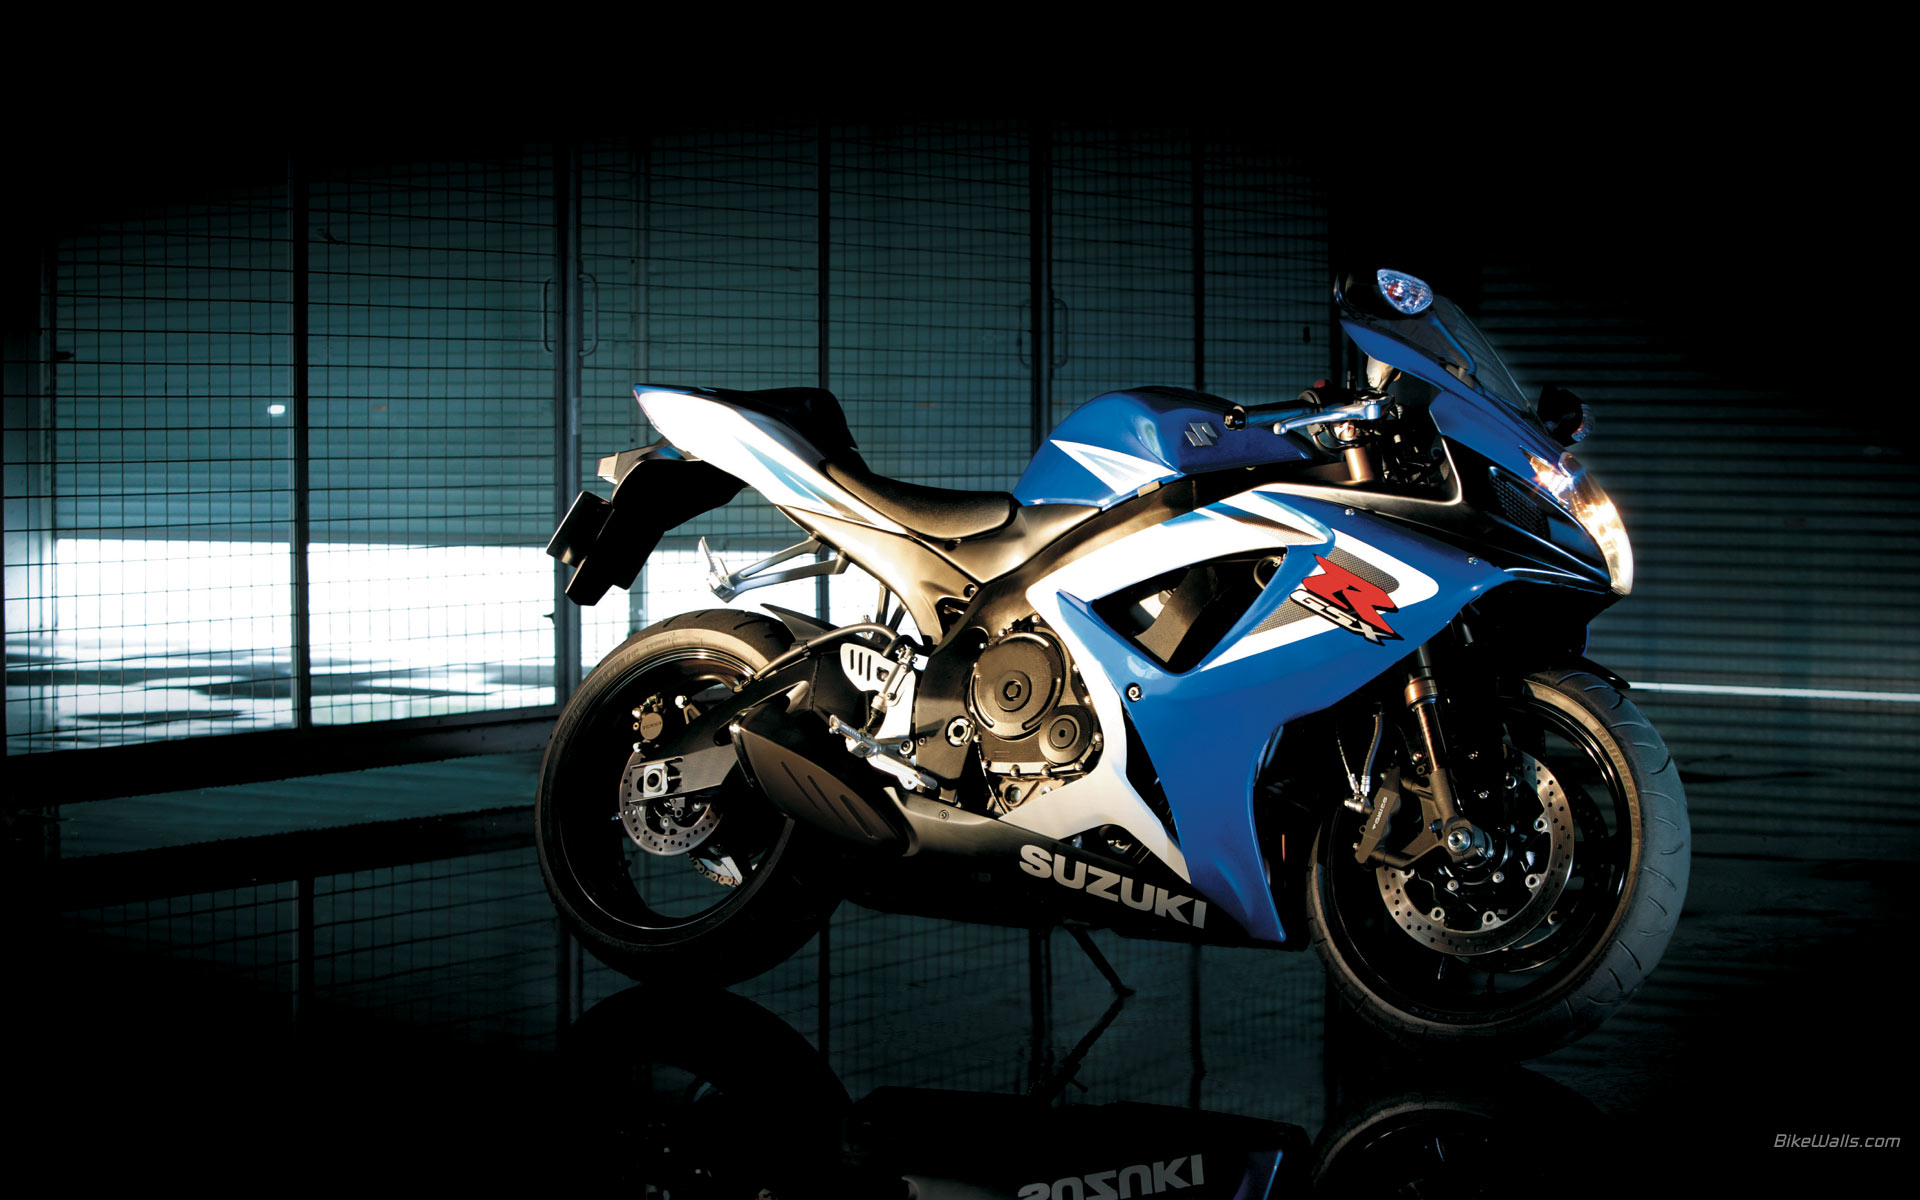 SUZUKI GSX R750 HD Wallpaper Free Download